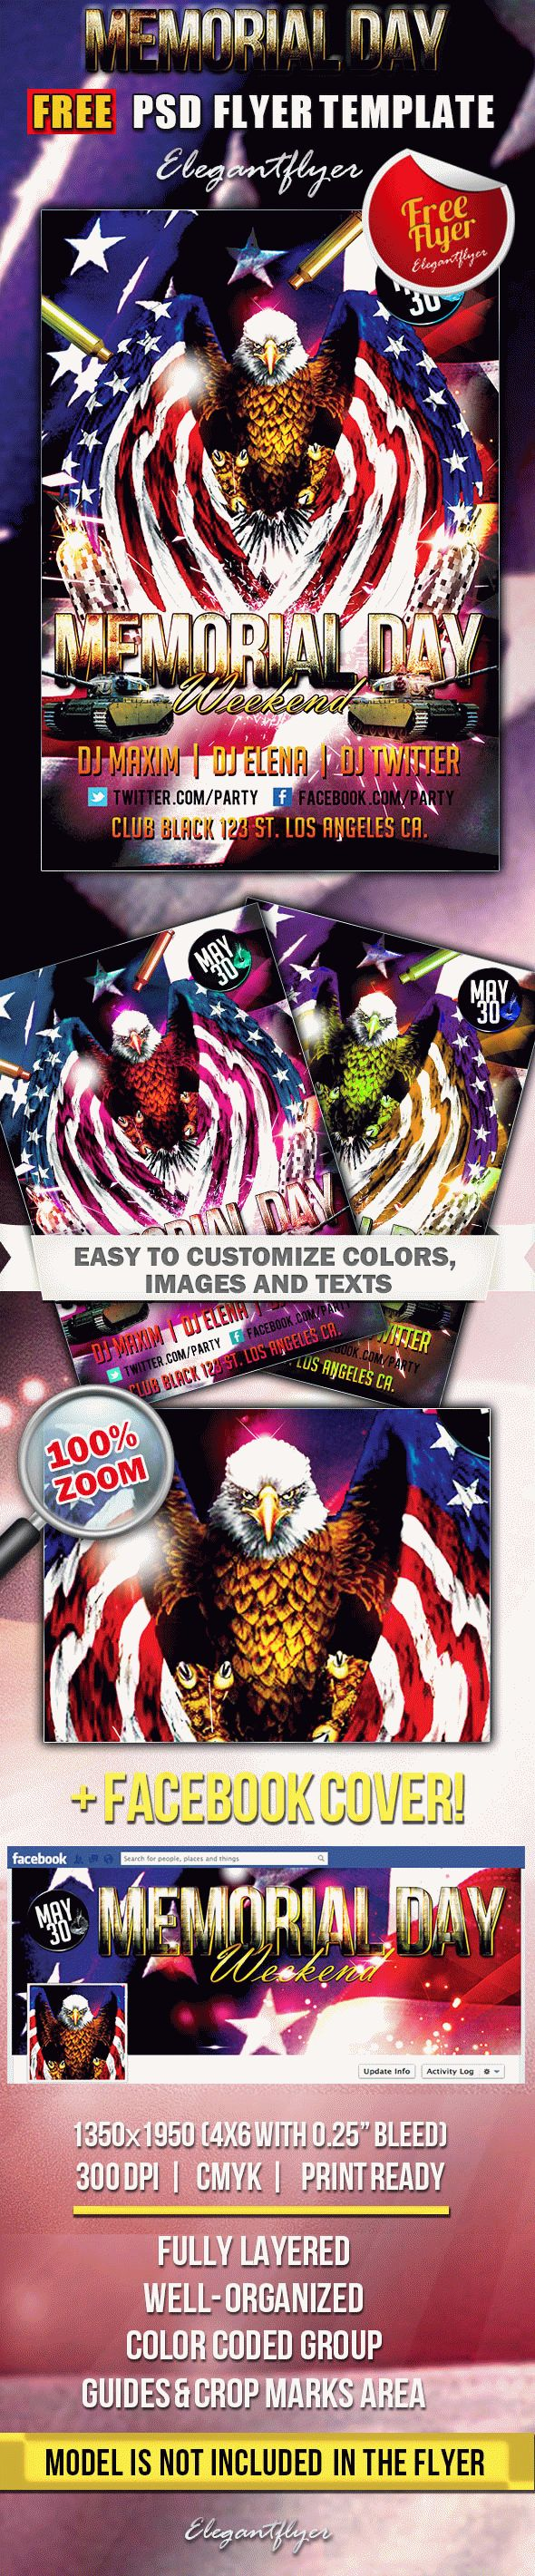 Memorial Day Weekend – Free Flyer PSD Template